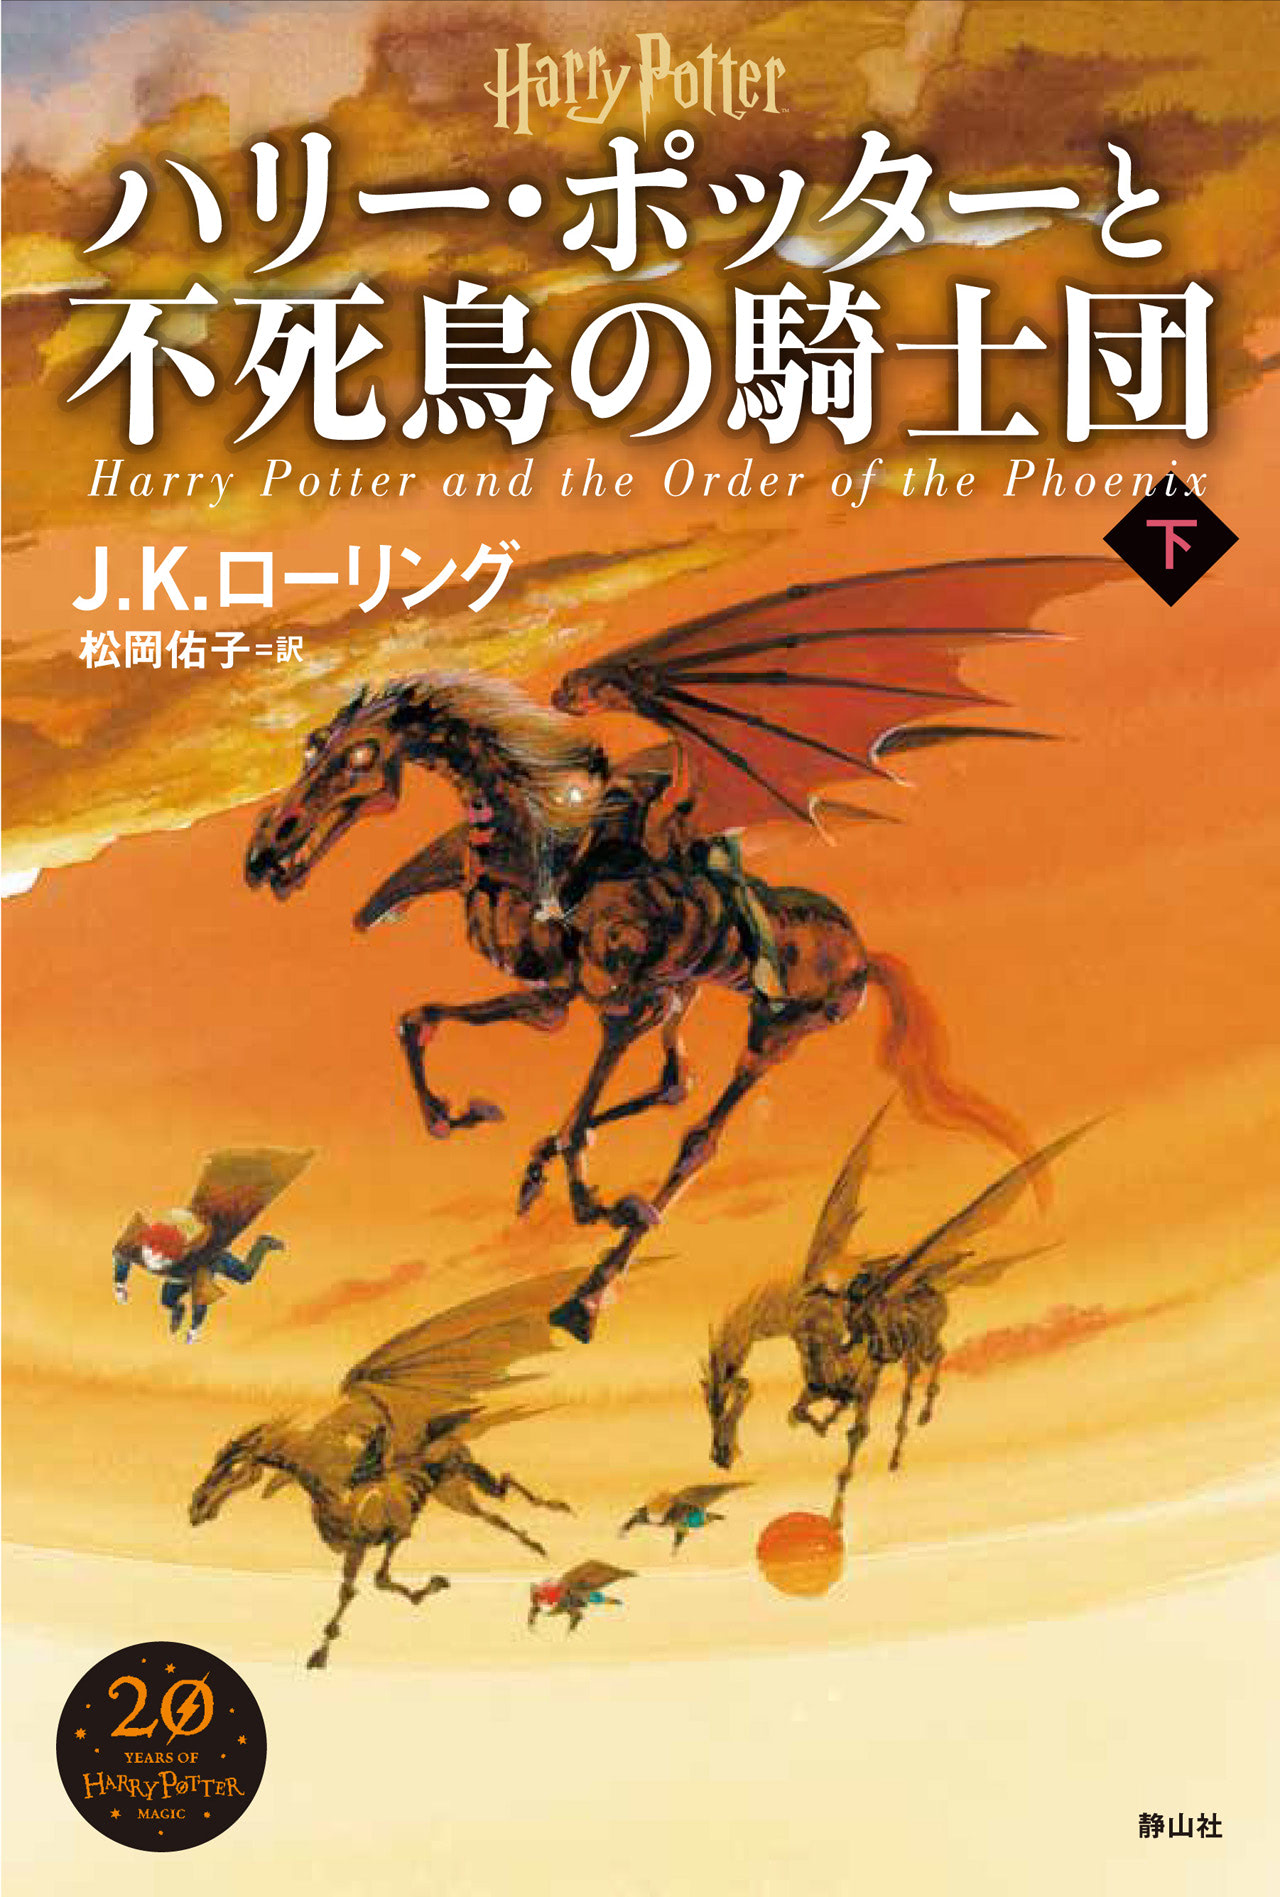 'Order of the Phoenix' Japanese 20th anniversary edition (volume 2)